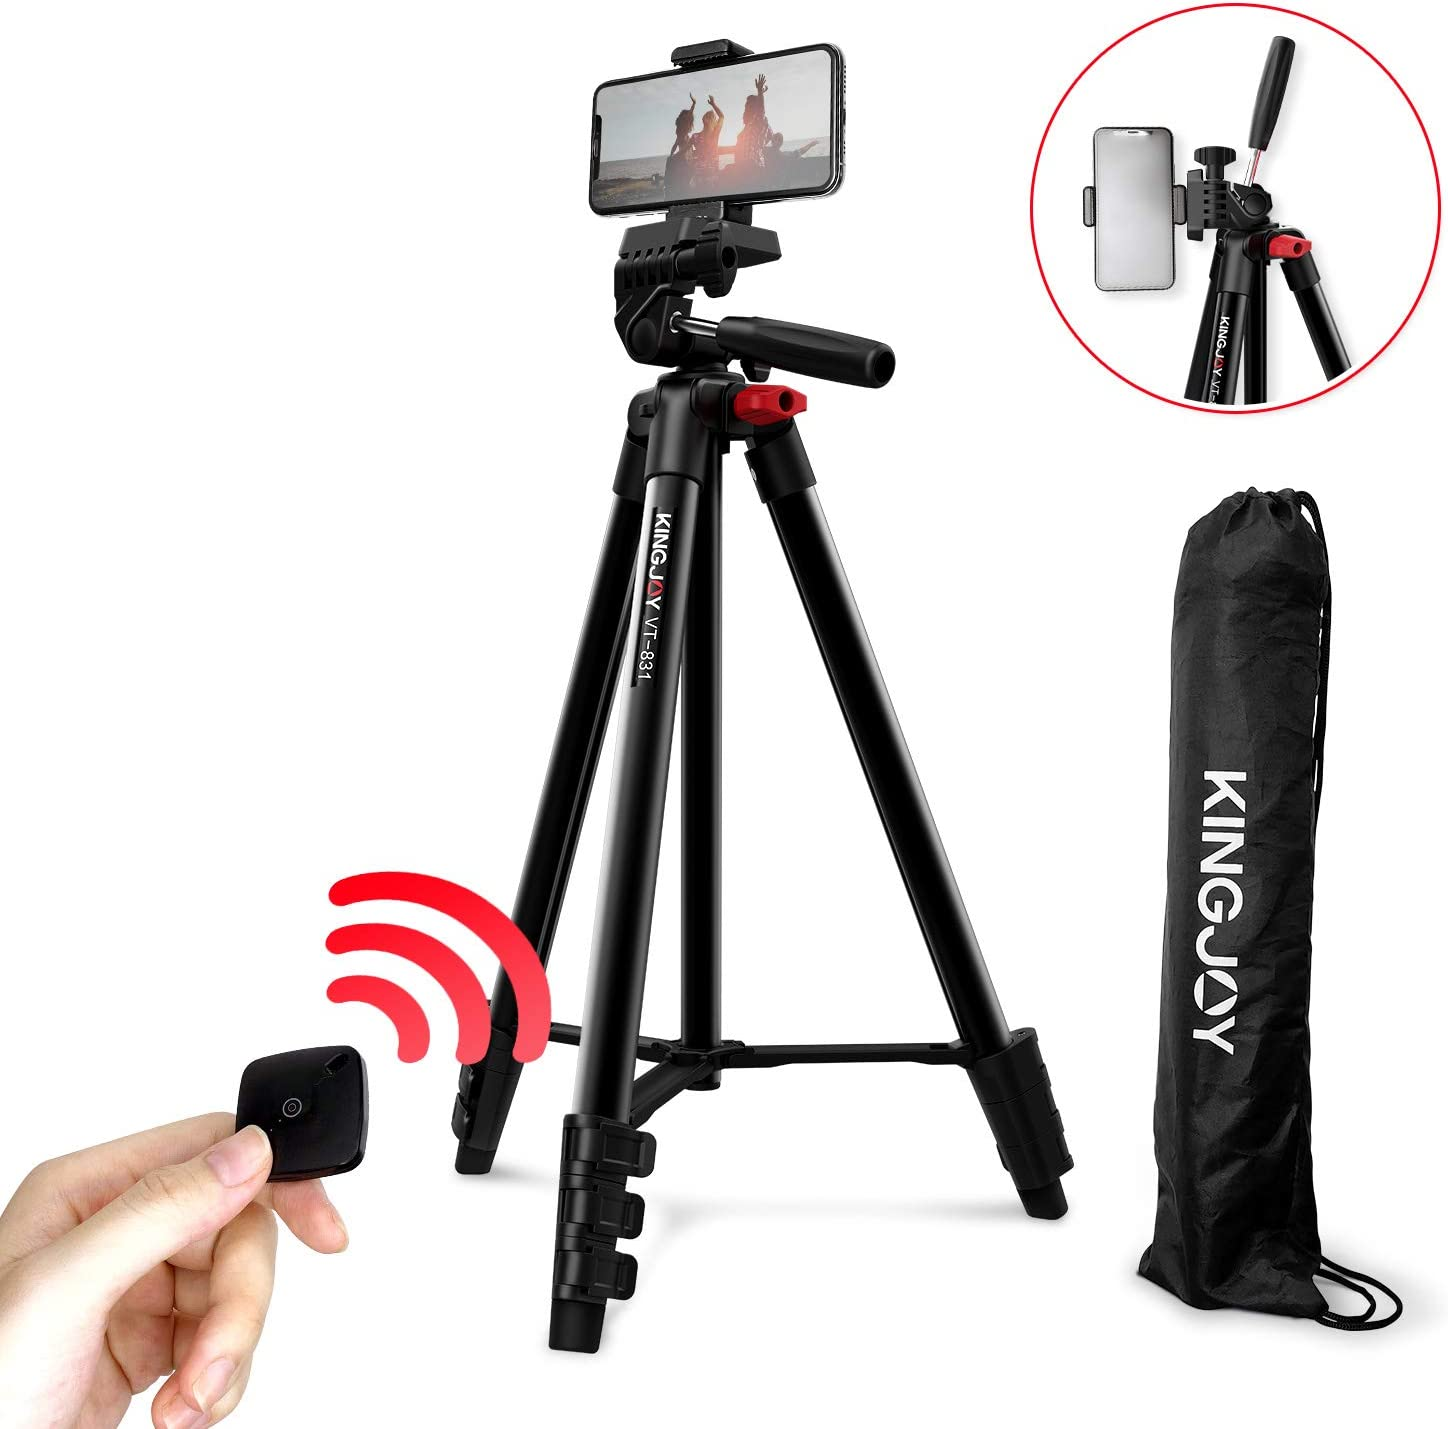 KINGJOY Lightweight Travel Tripod, 53-inch Aluminum Camera Tripod with Bluetooth Remote Cell Phone Mount, Video Tripod for Camera and Phone, Compatible with iPhone/Android VT-831